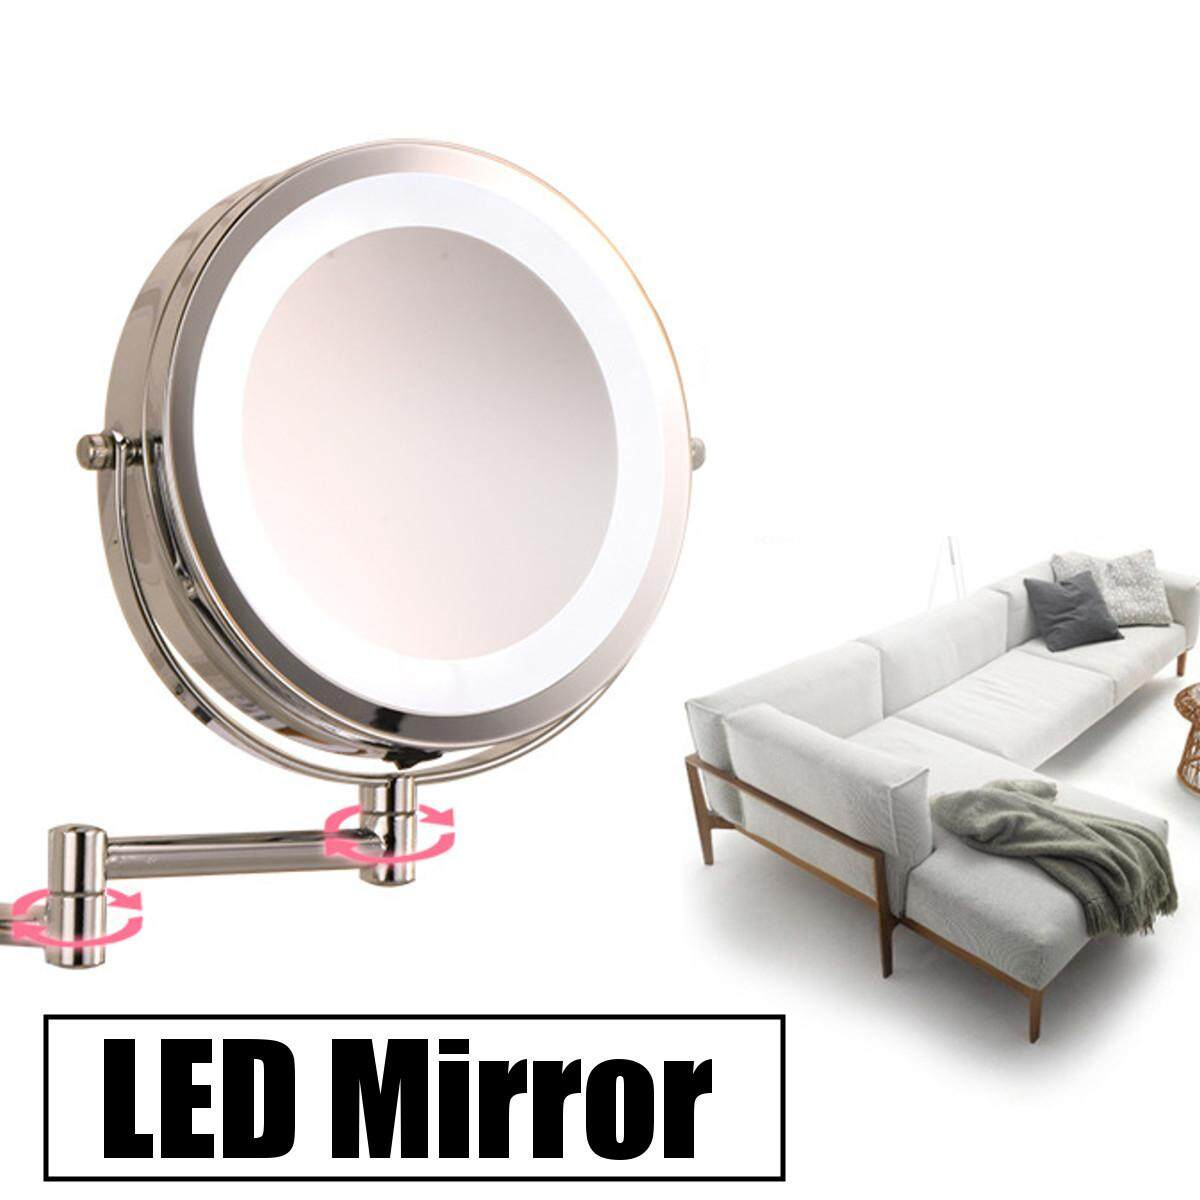 Flexible Folding Led Cosmetic Mirror By Moonbeam.